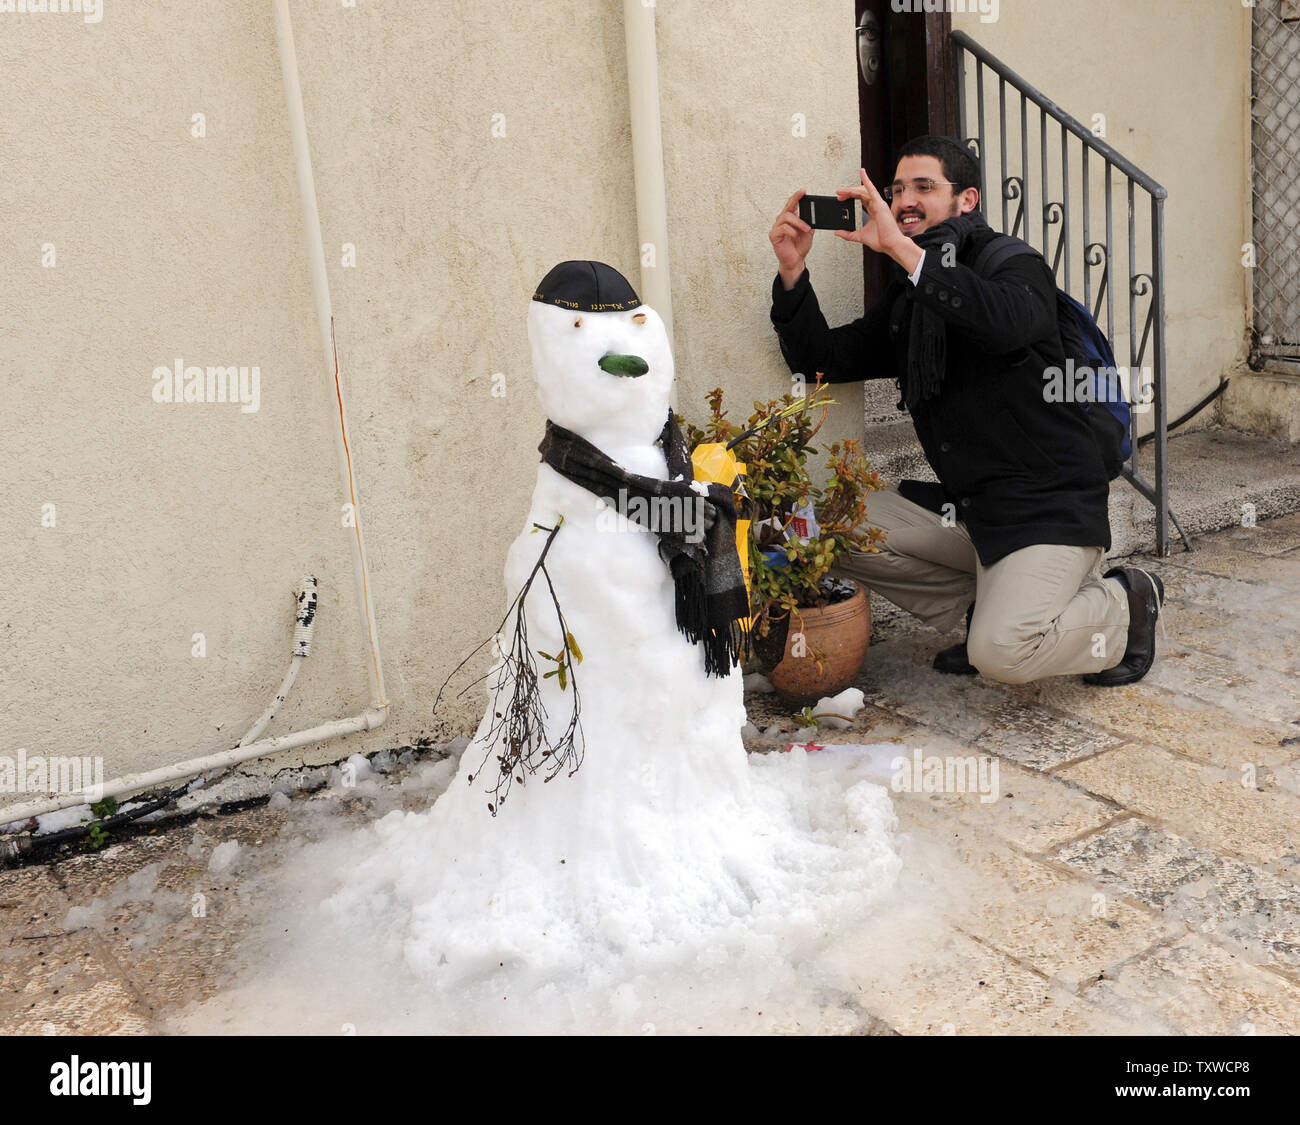 An Israeli takes a photo of a snow man after a rare winter snow storm in Jerusalem, March 2, 2012. Residents of Jerusalem woke to 1.575 inches of snow in the first snow fall in Jerusalem in more than two years.  UPI/Debbie Hill - Stock Image